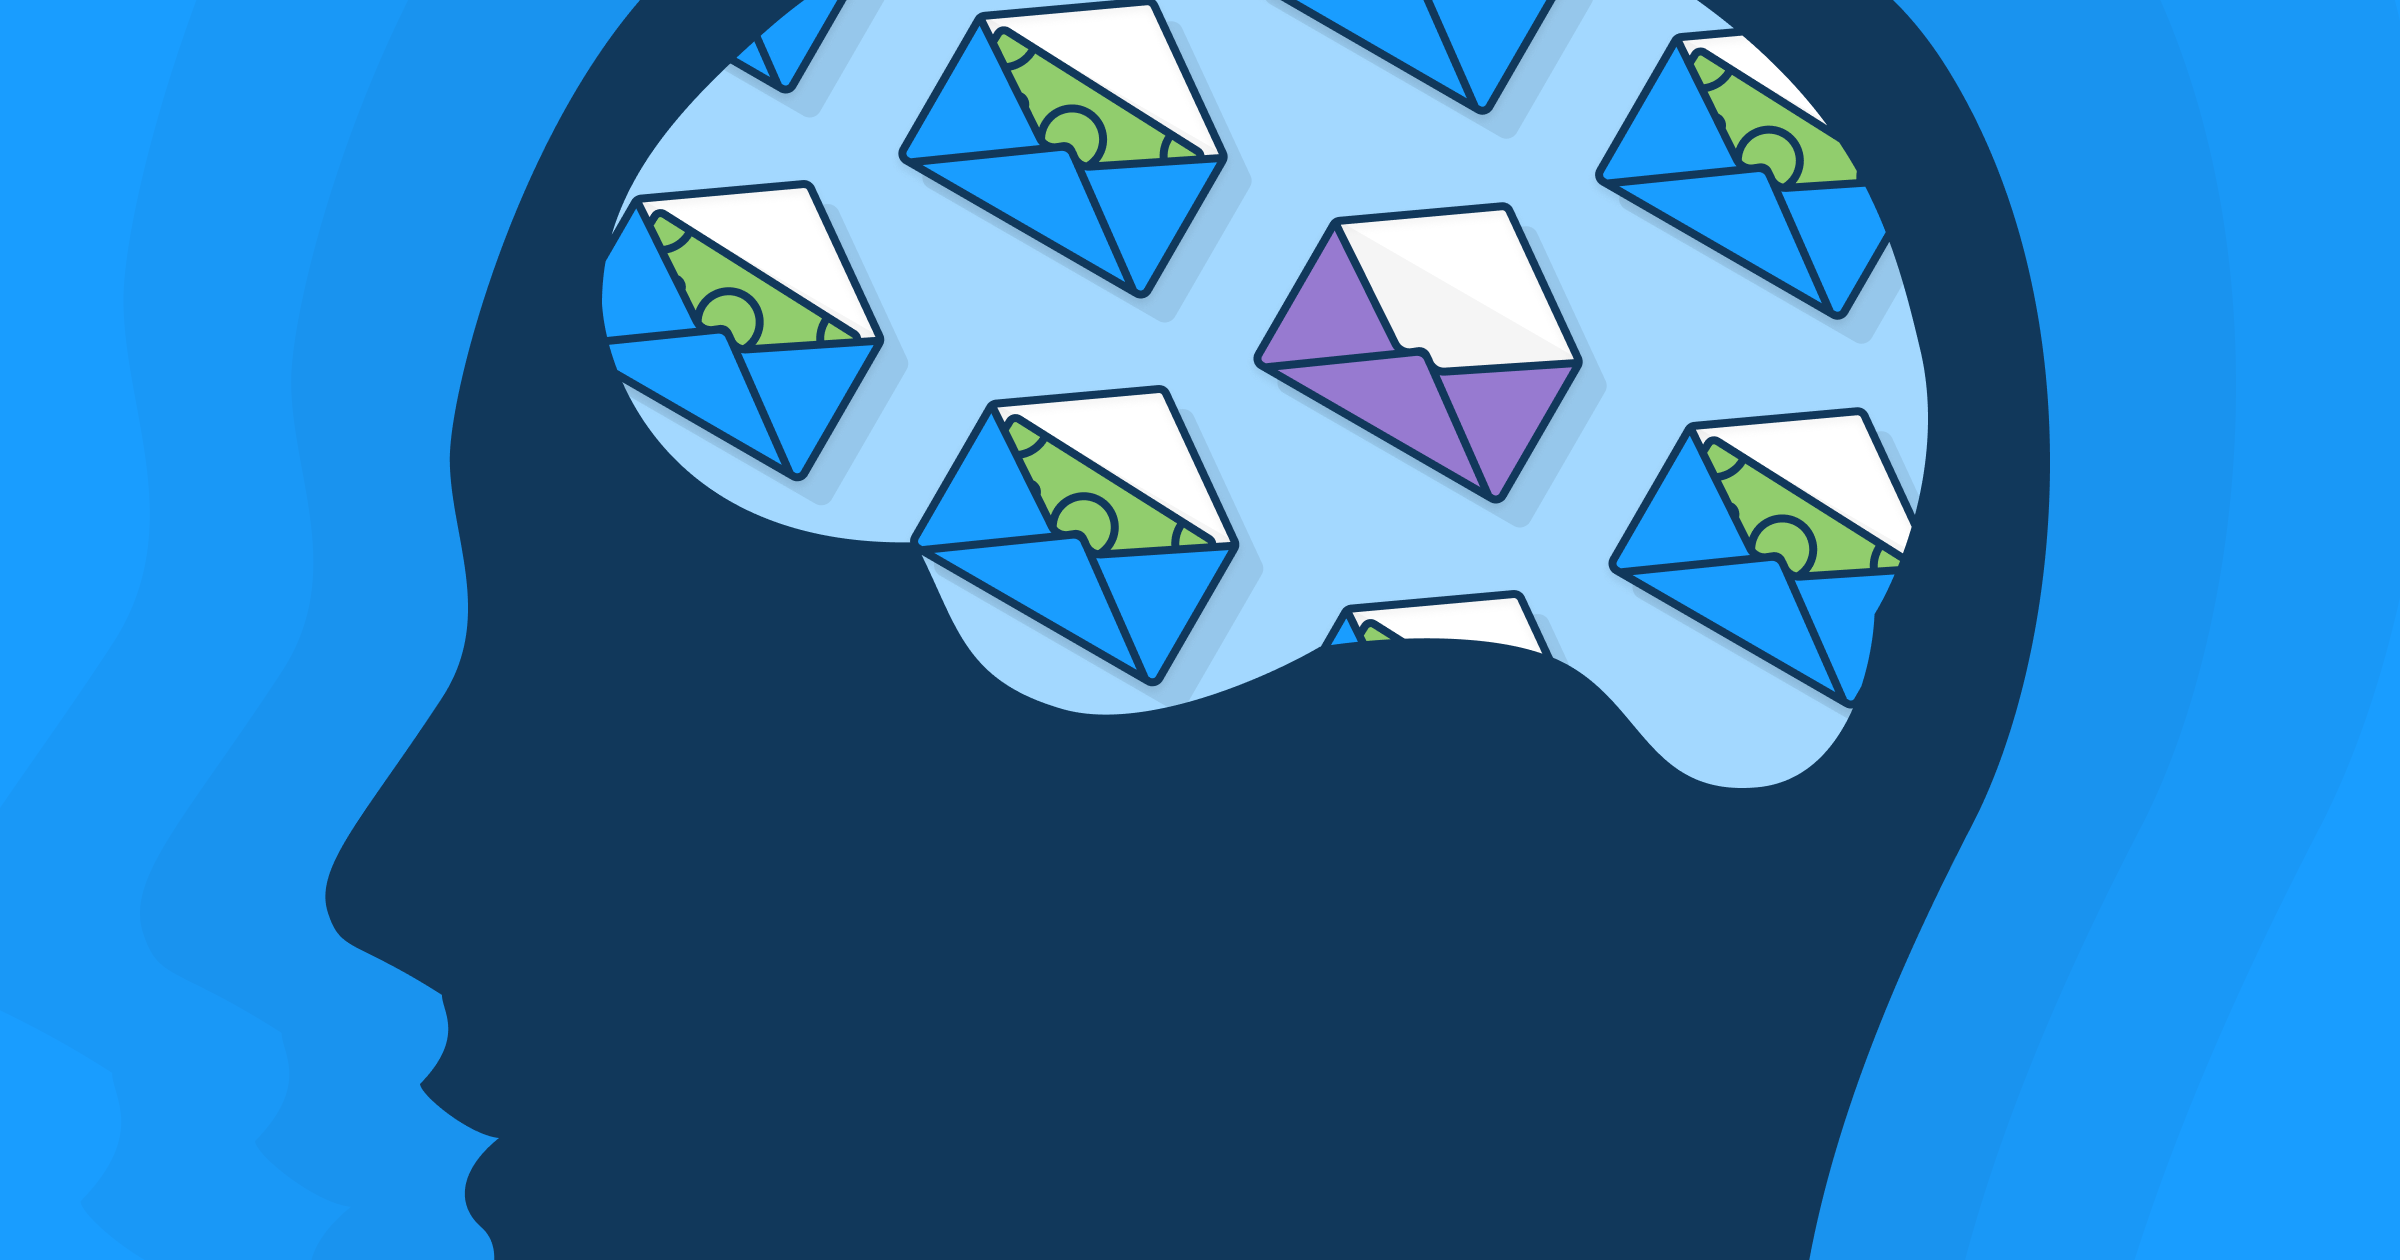 A silhouette of a person's head, with the brain area filled with envelopes containing money